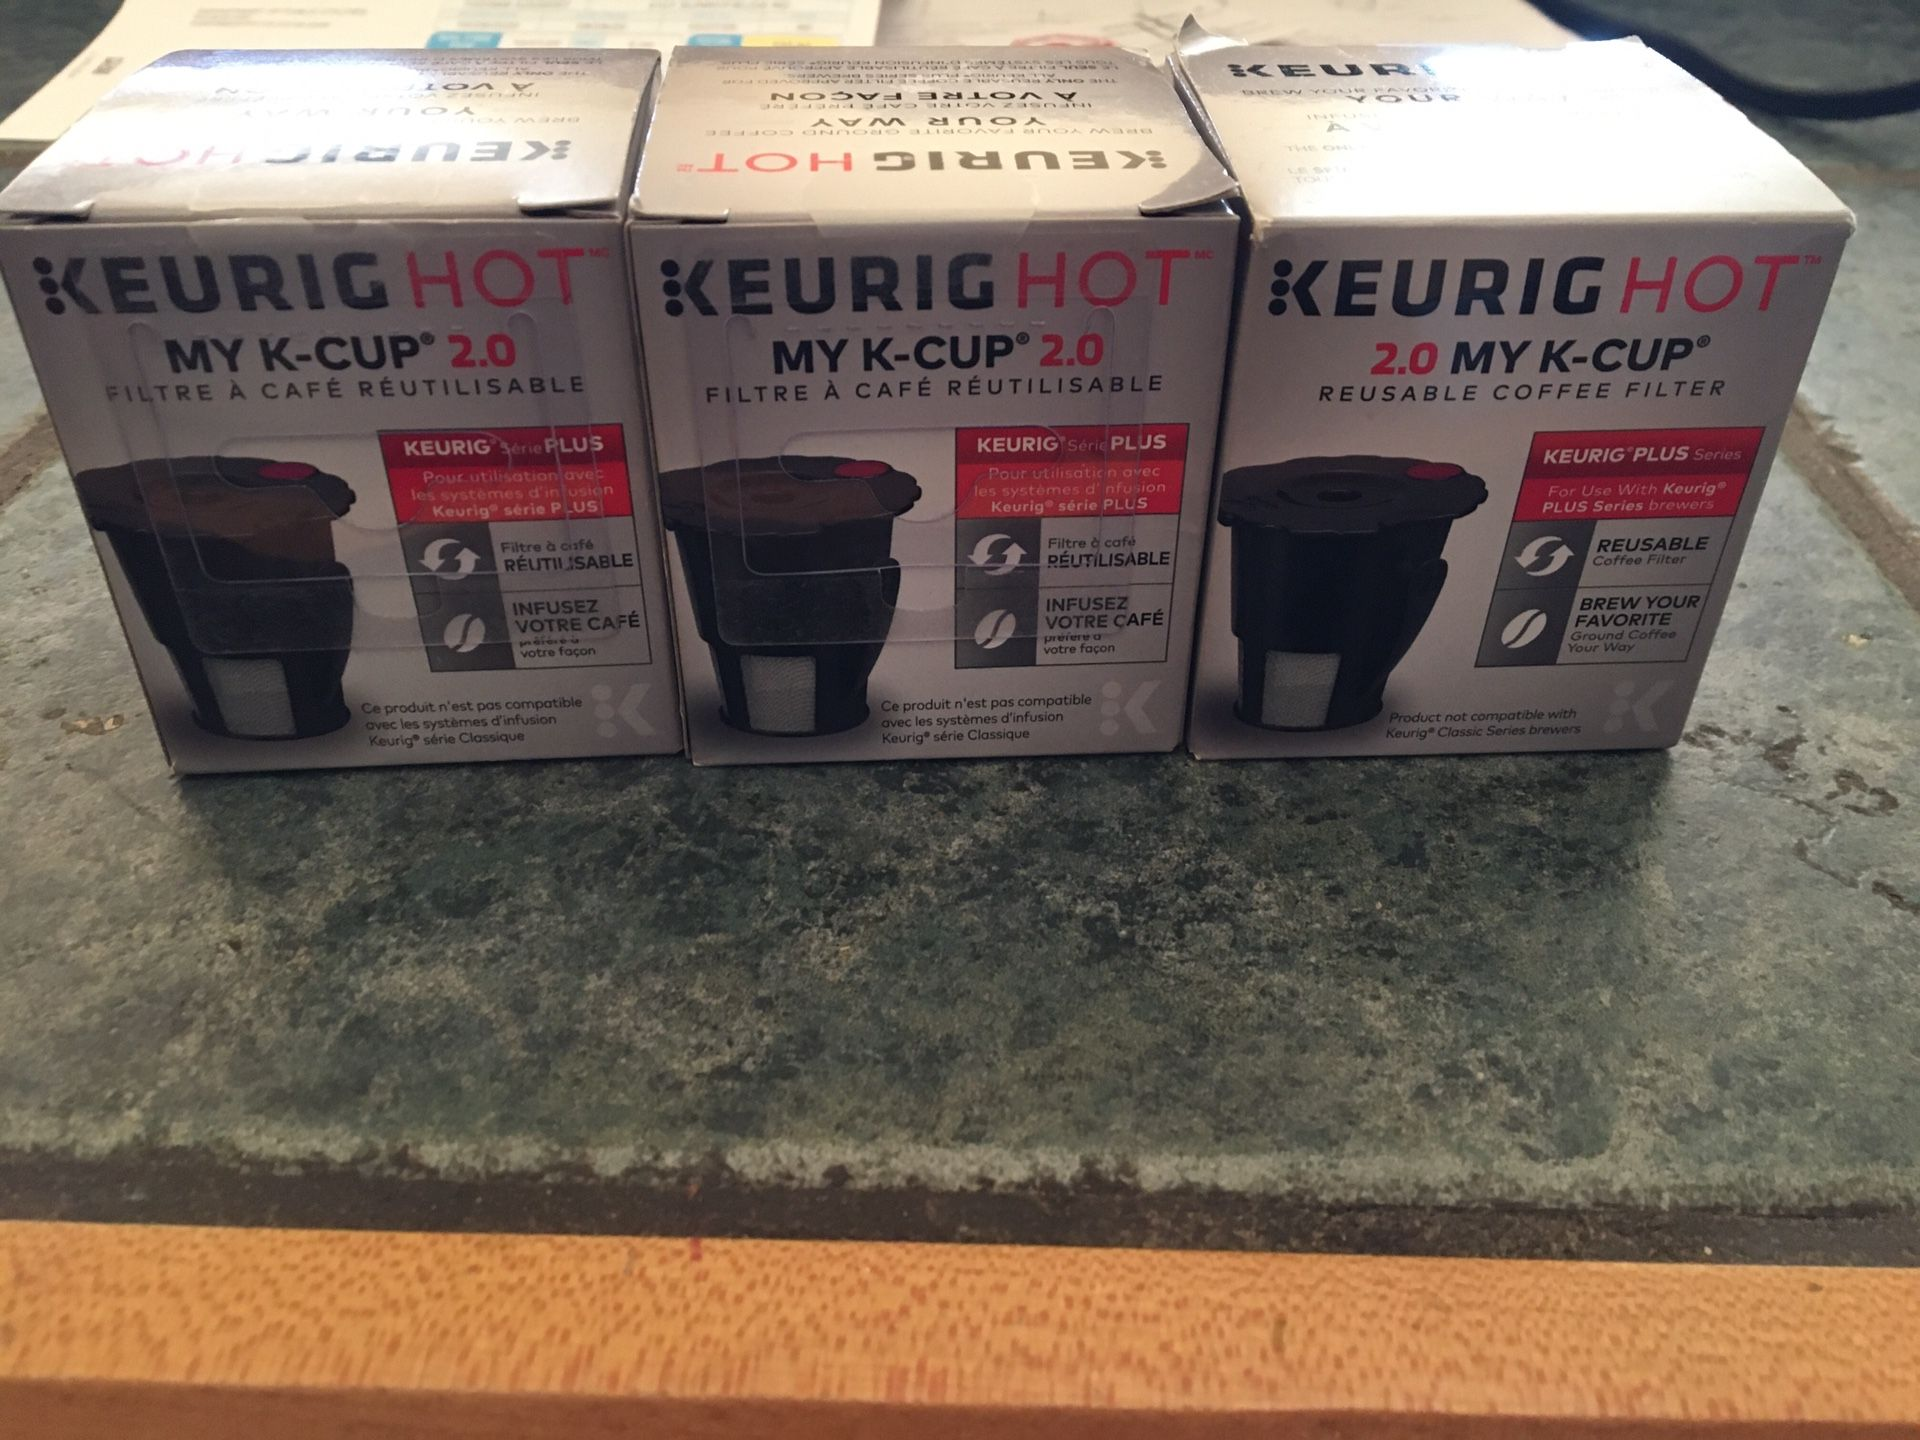 Keurig my k cup 2.0 reusable filters for ground coffee